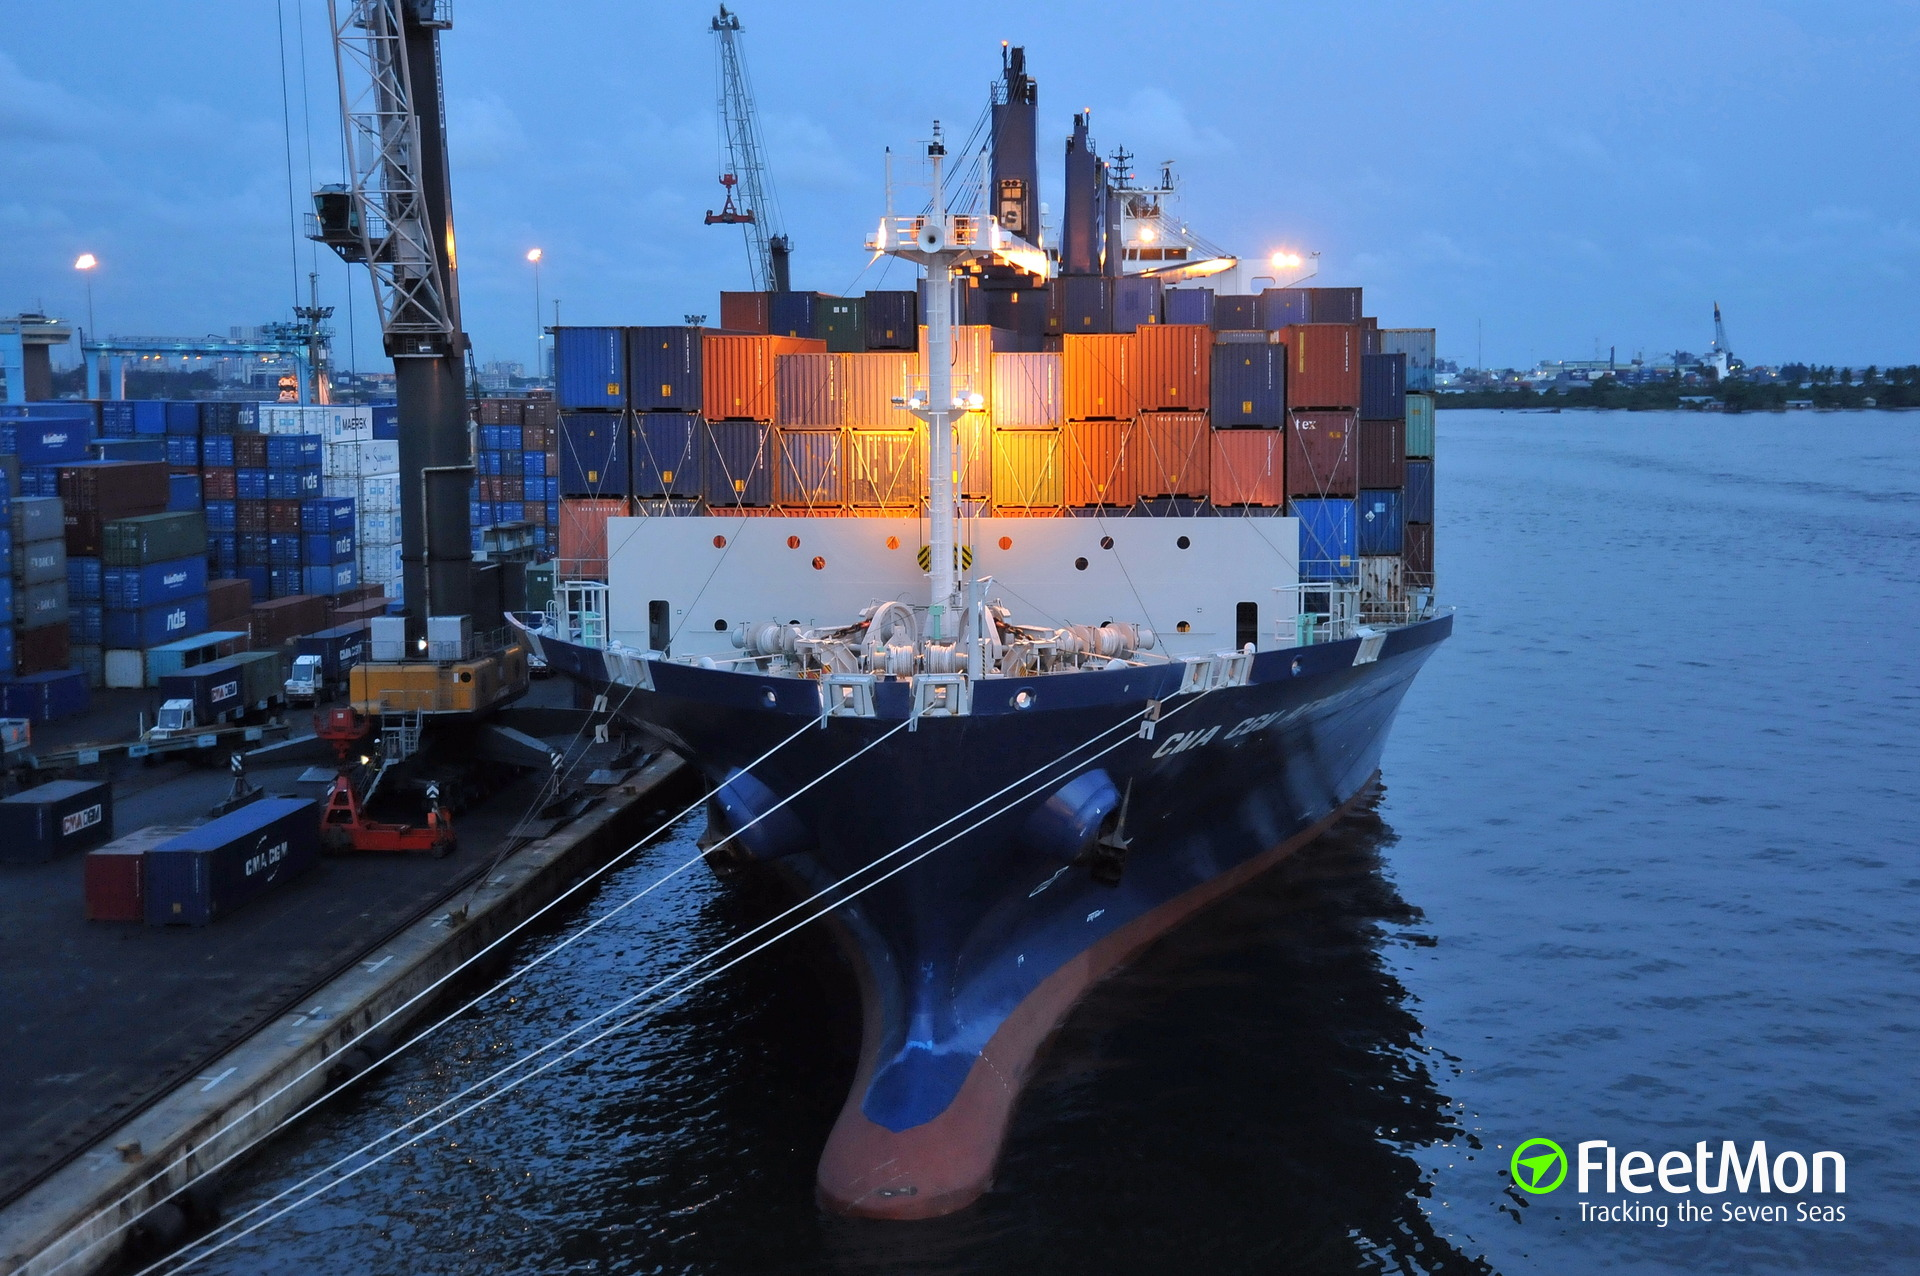 Boxship CMA CGM Africa Four and ref Frio Athens attacked, ref probably hijacked